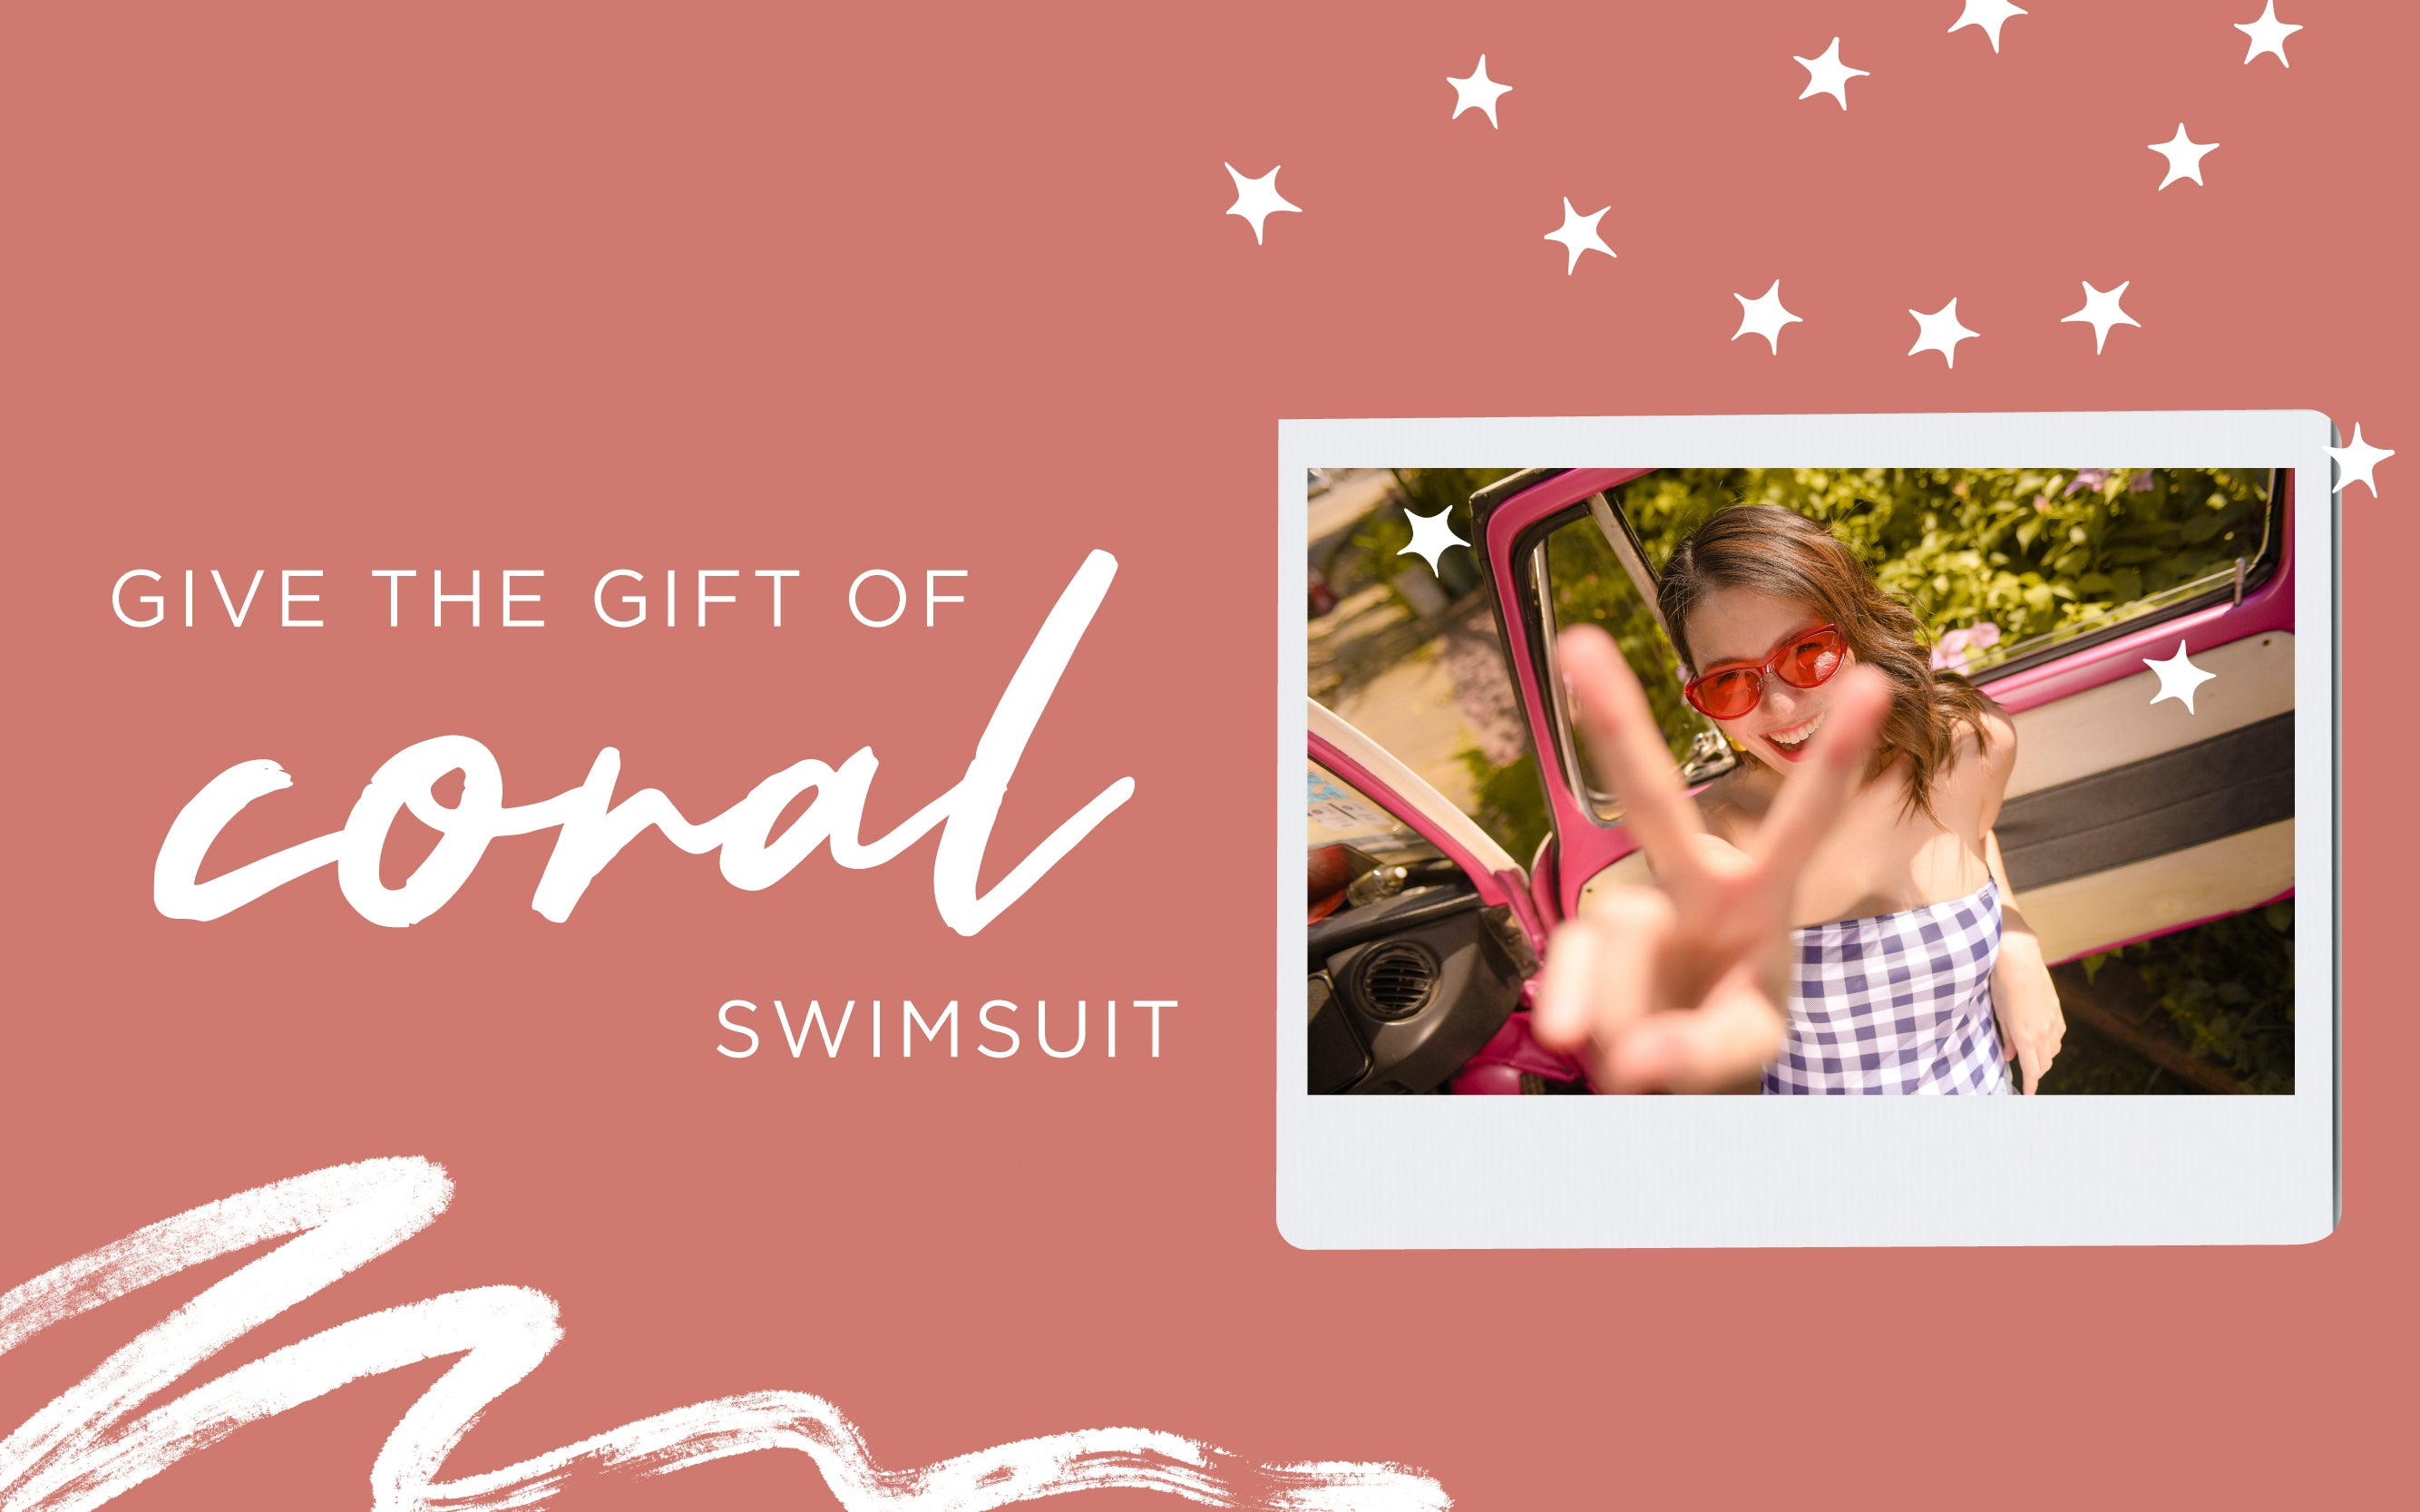 Give the Gift of Coral Swimsuit